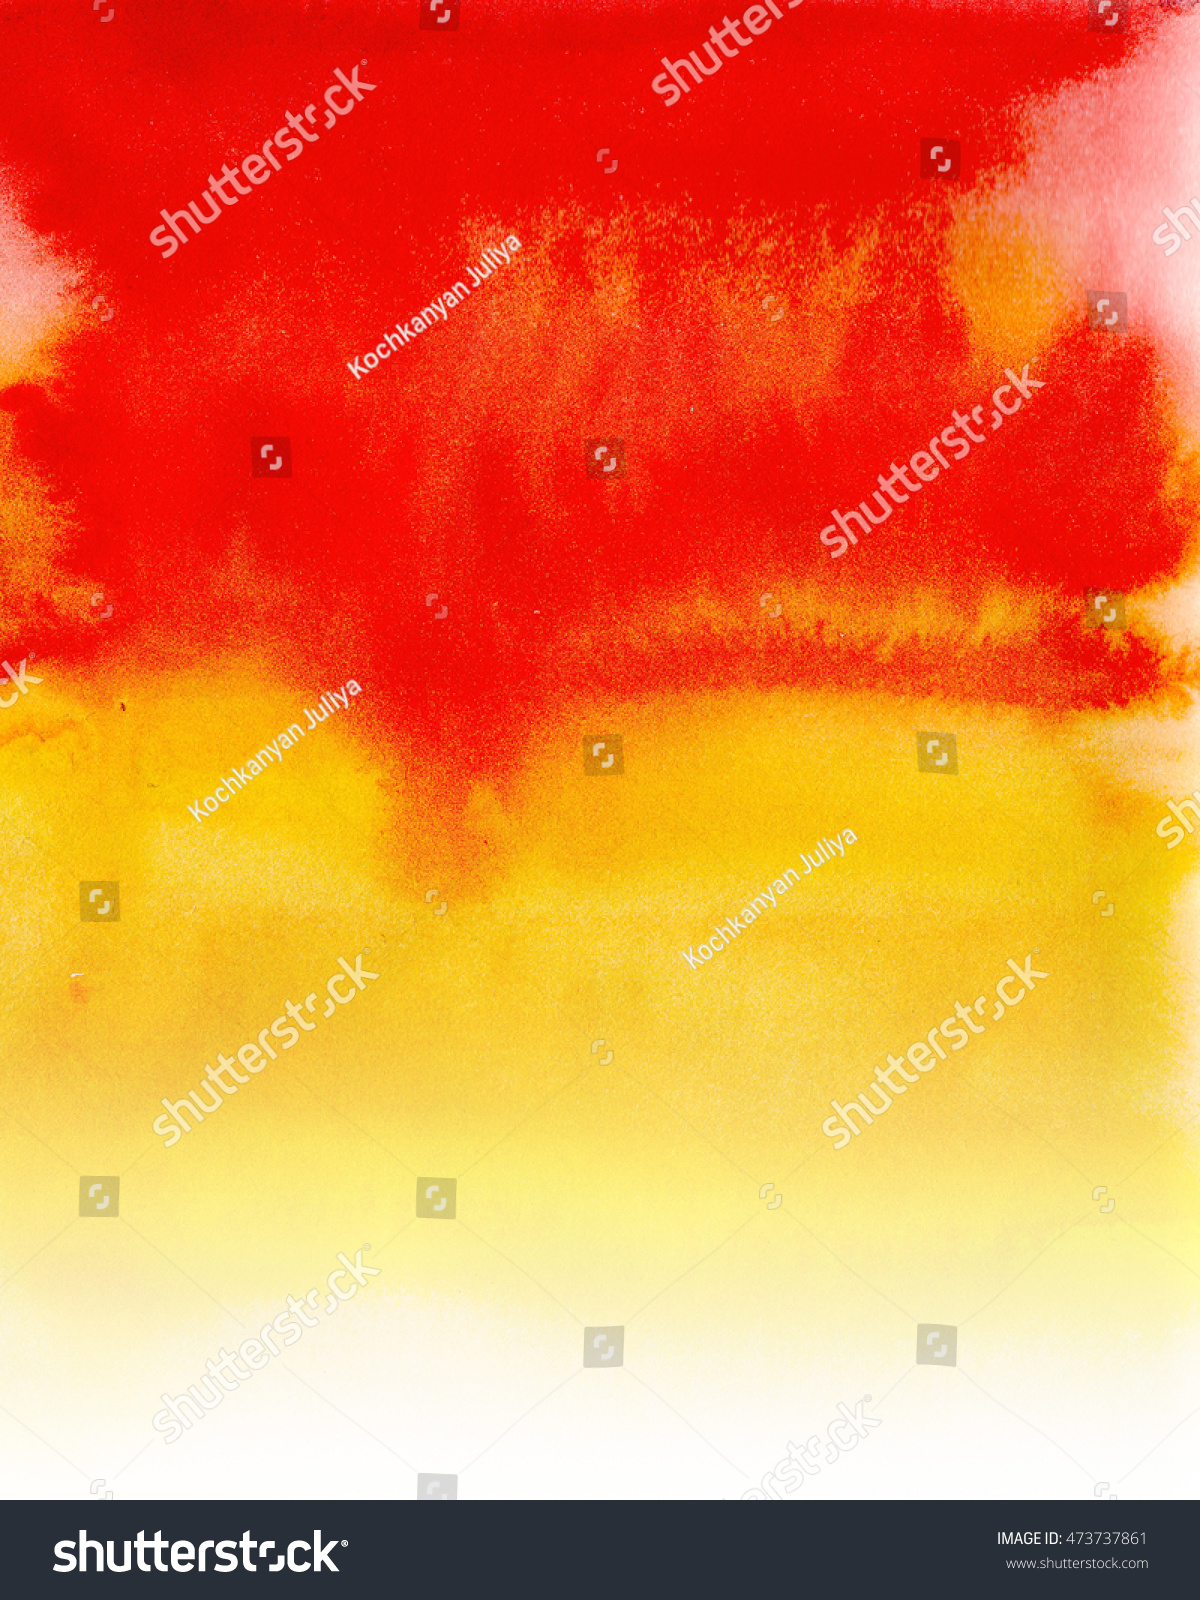 Ombre Watercolor Backgrounds Watercolor Background Textures Stock ...